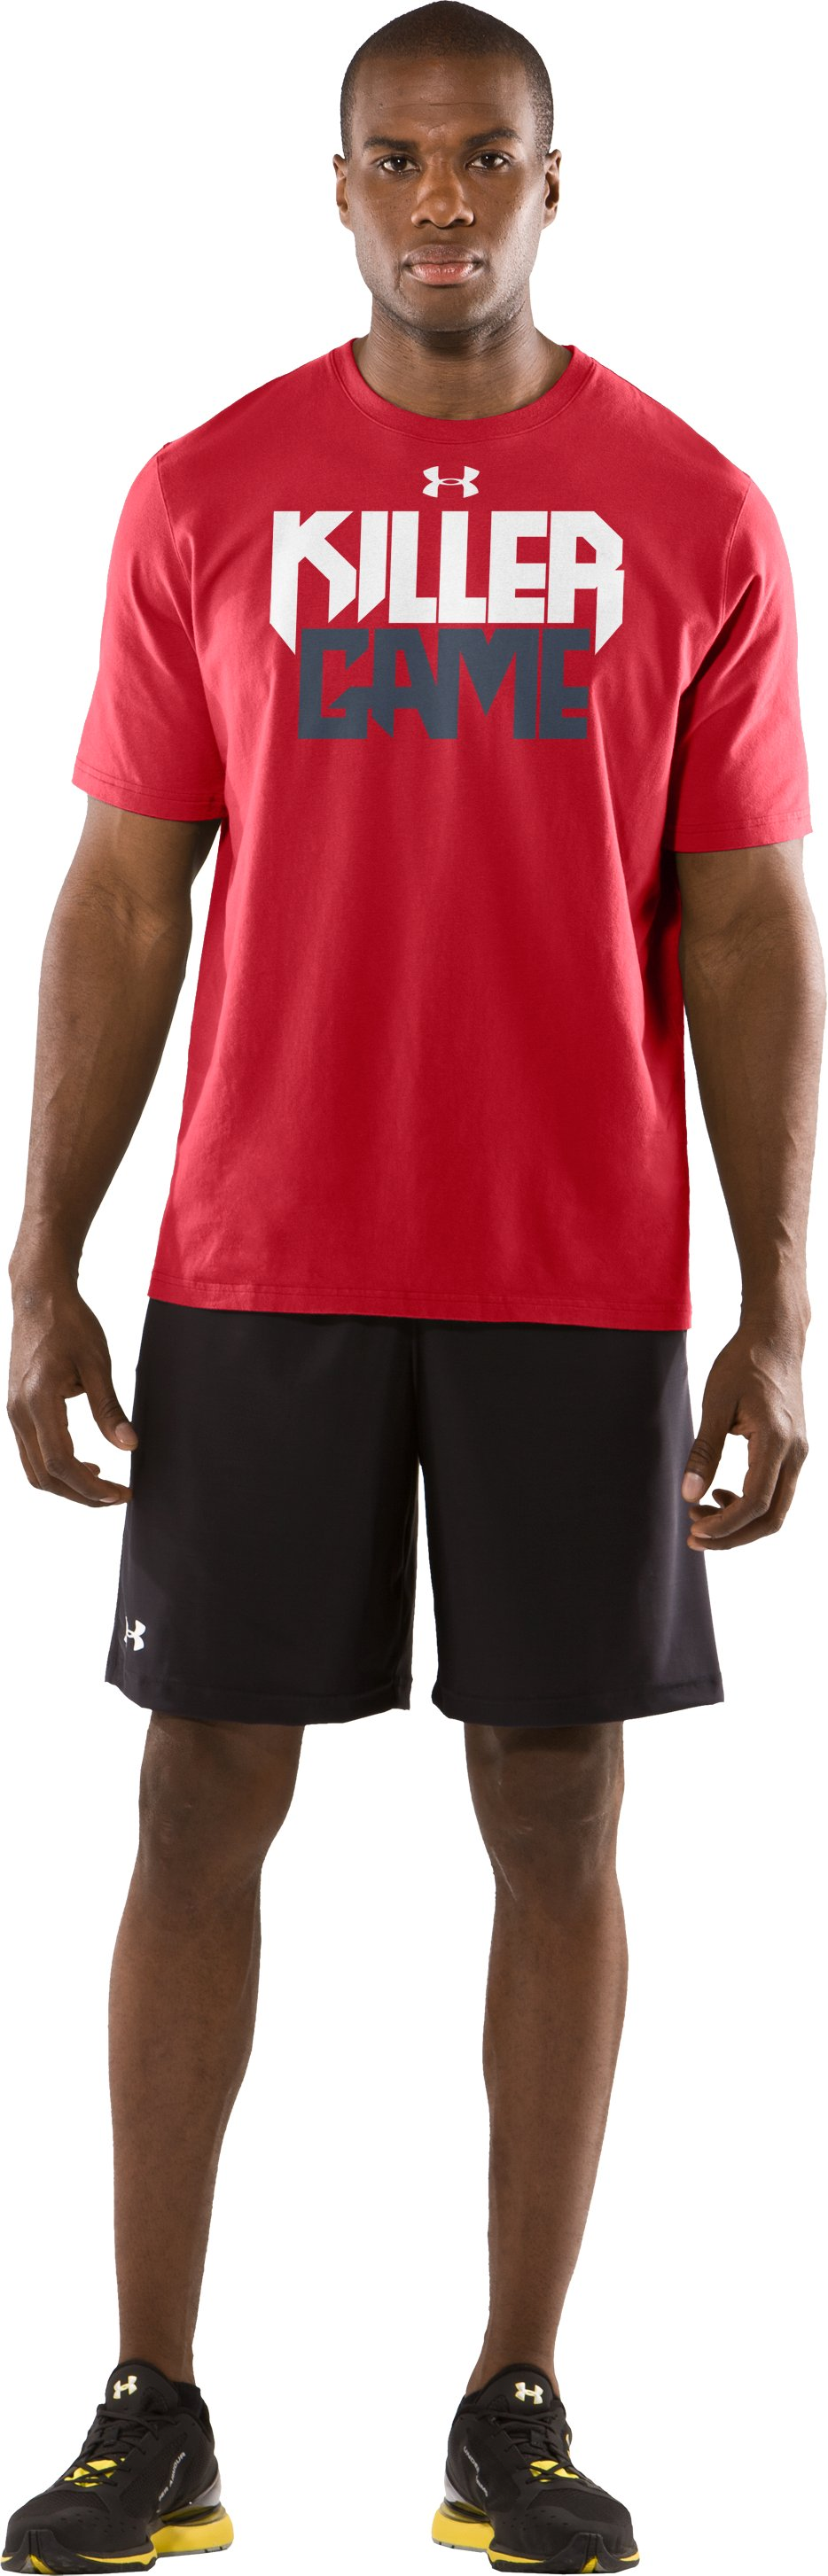 Men's UA Killer Game T-Shirt, Red, Front